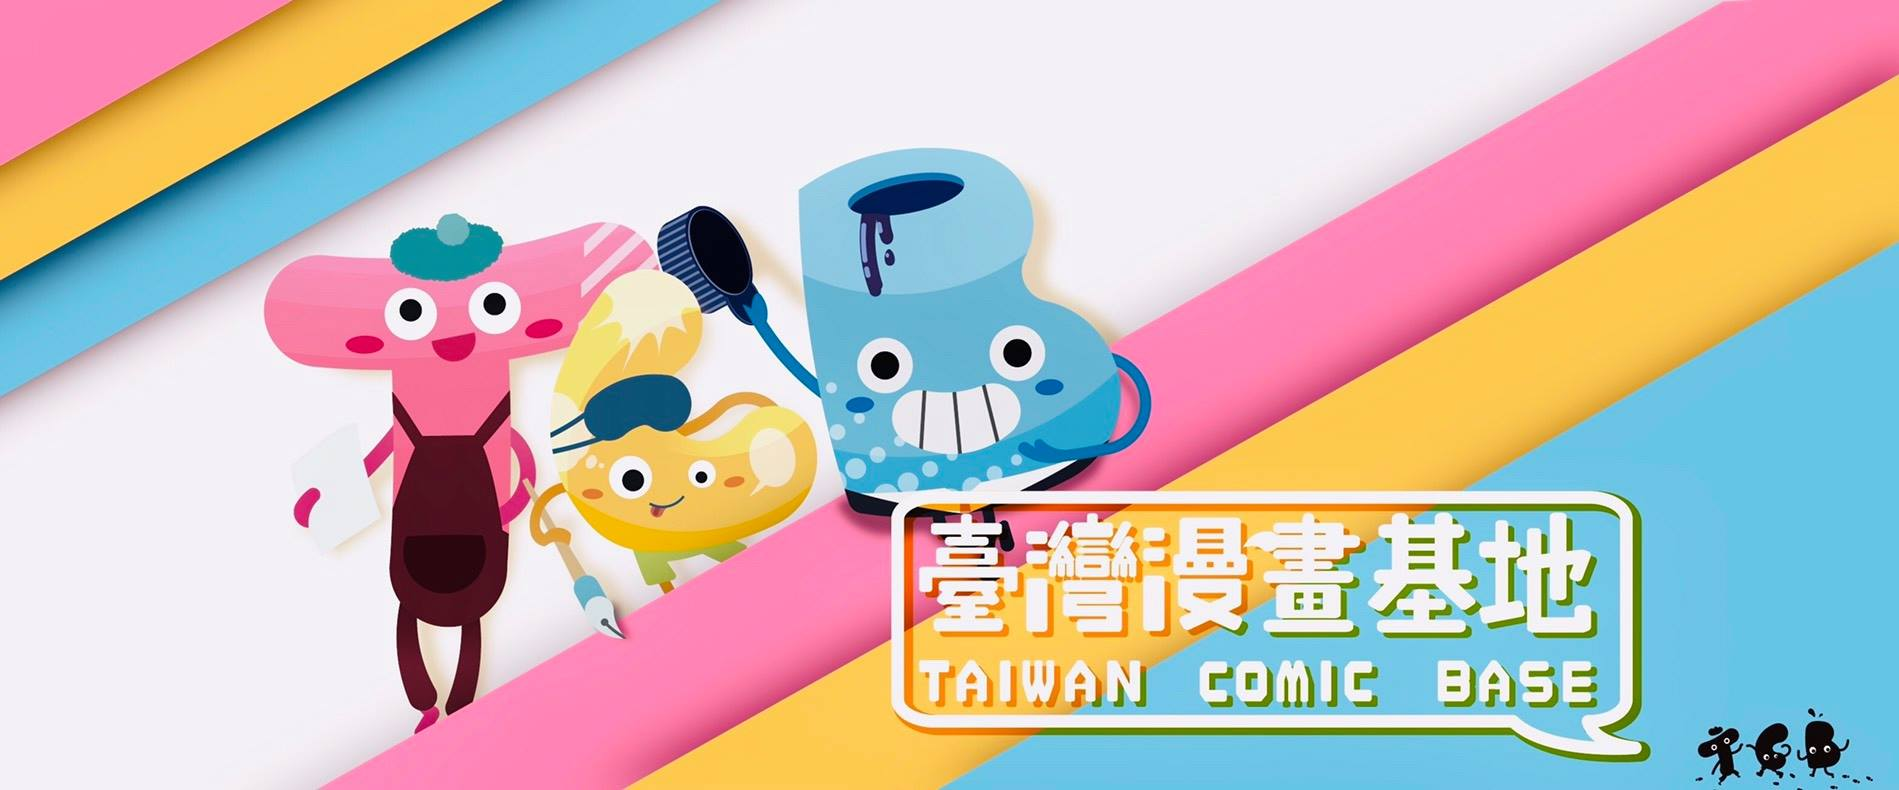 Taipei launches one-stop destination for Taiwanese comics